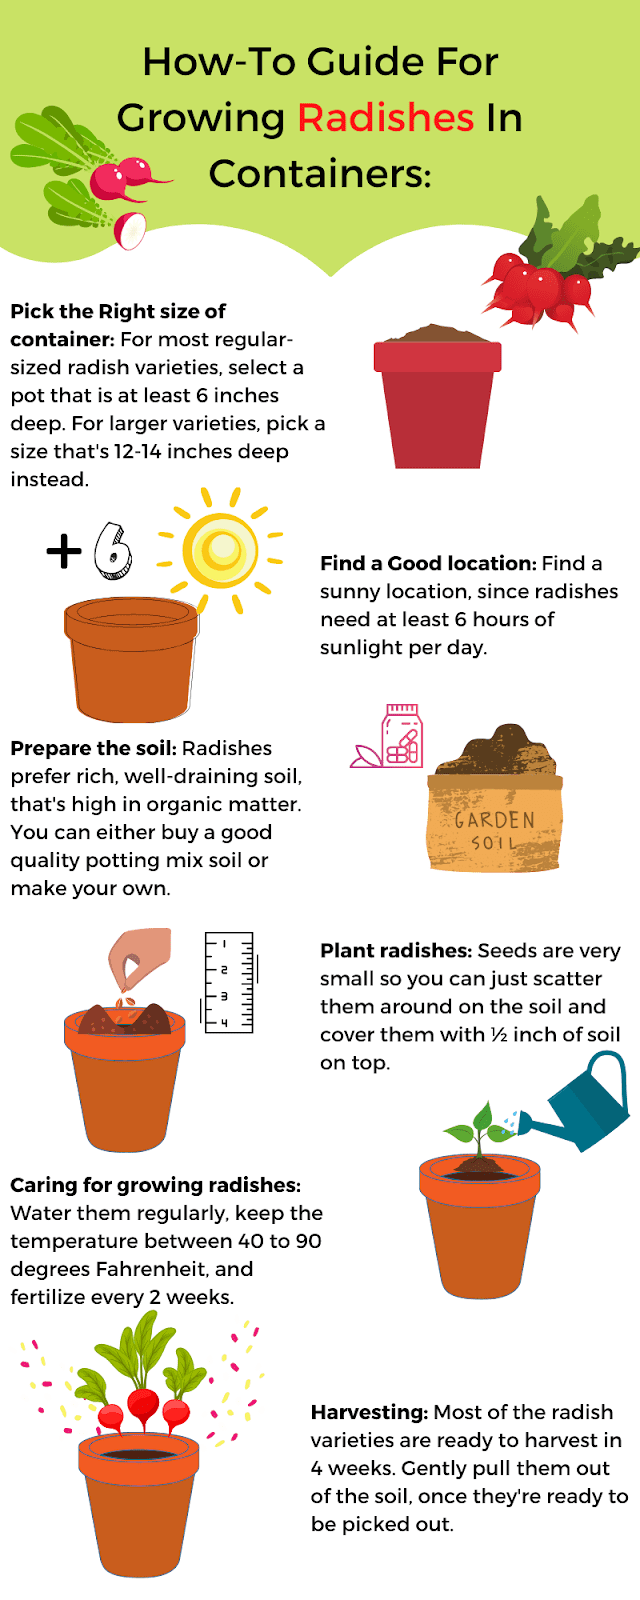 How-To Guide for Growing Radishes in Containers infographic